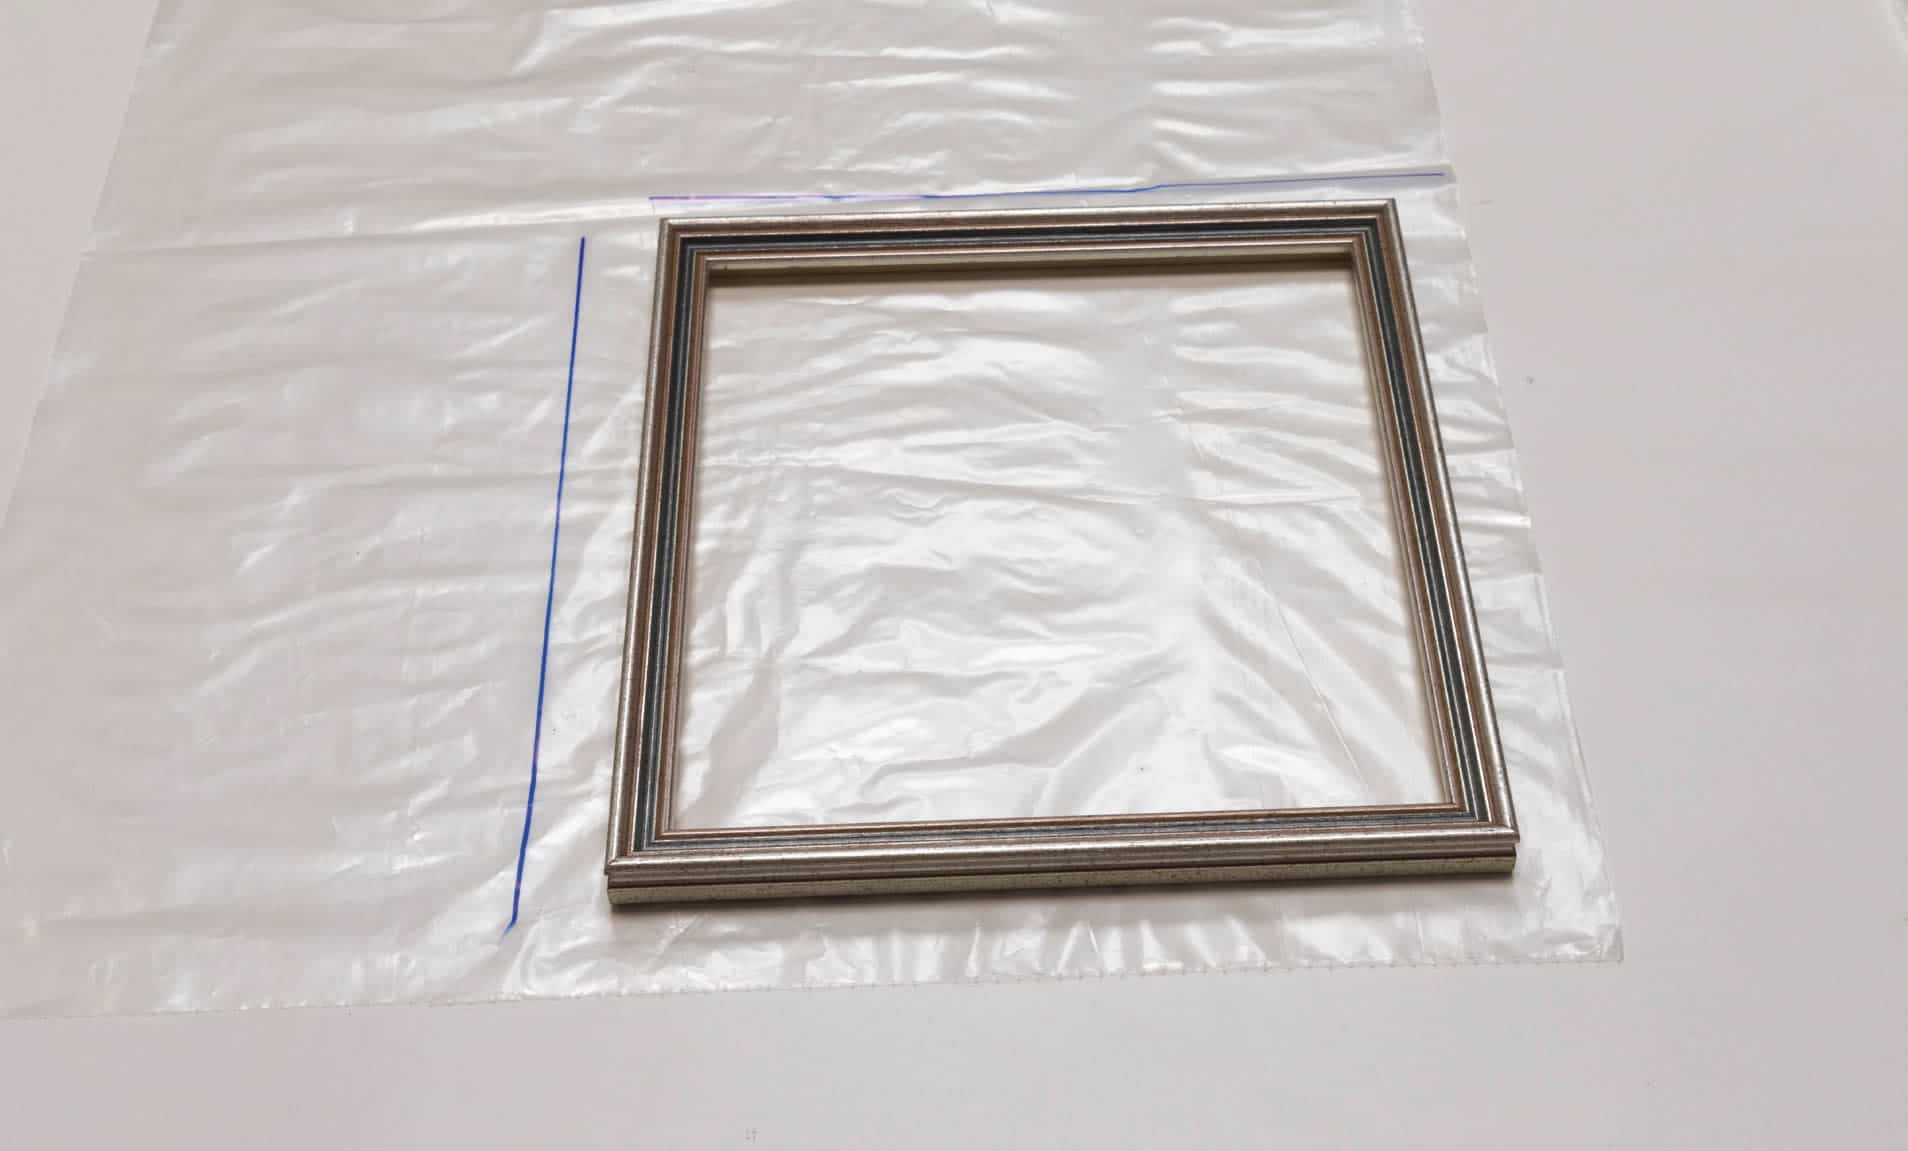 step 1a - create mini indoor greenhouse - photo of picture frame on plastic